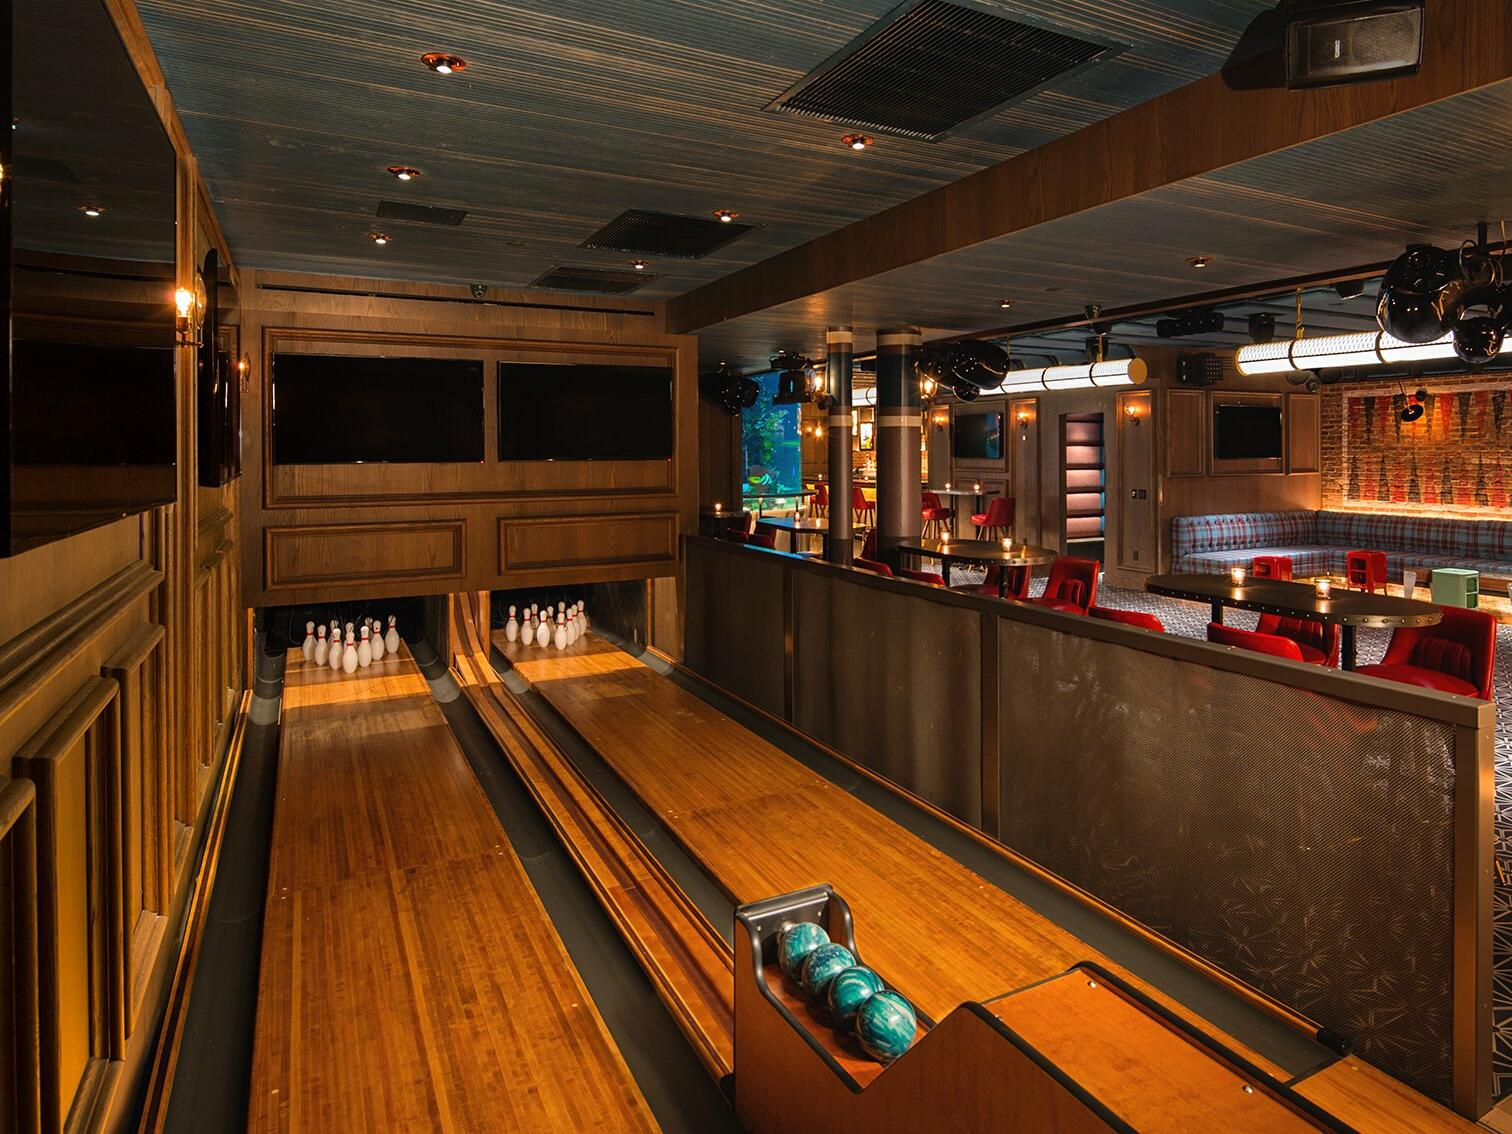 2 bowling alleys in the Fishbowl Lounge at Dream Midtown NYC